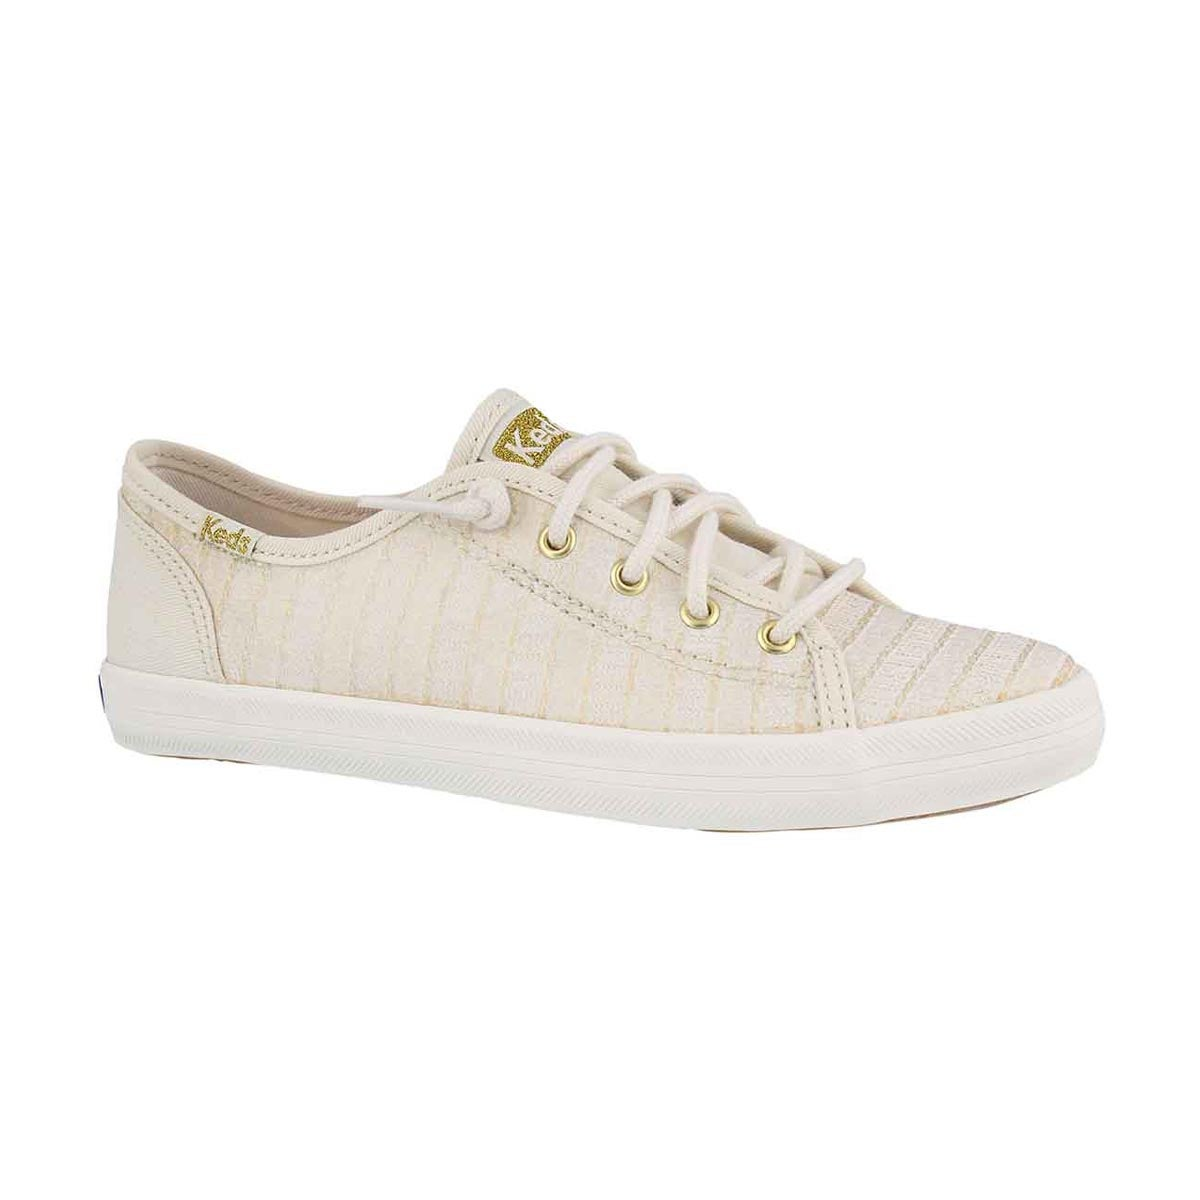 Girls' KICKSTART SEASONAL ivory sneakers